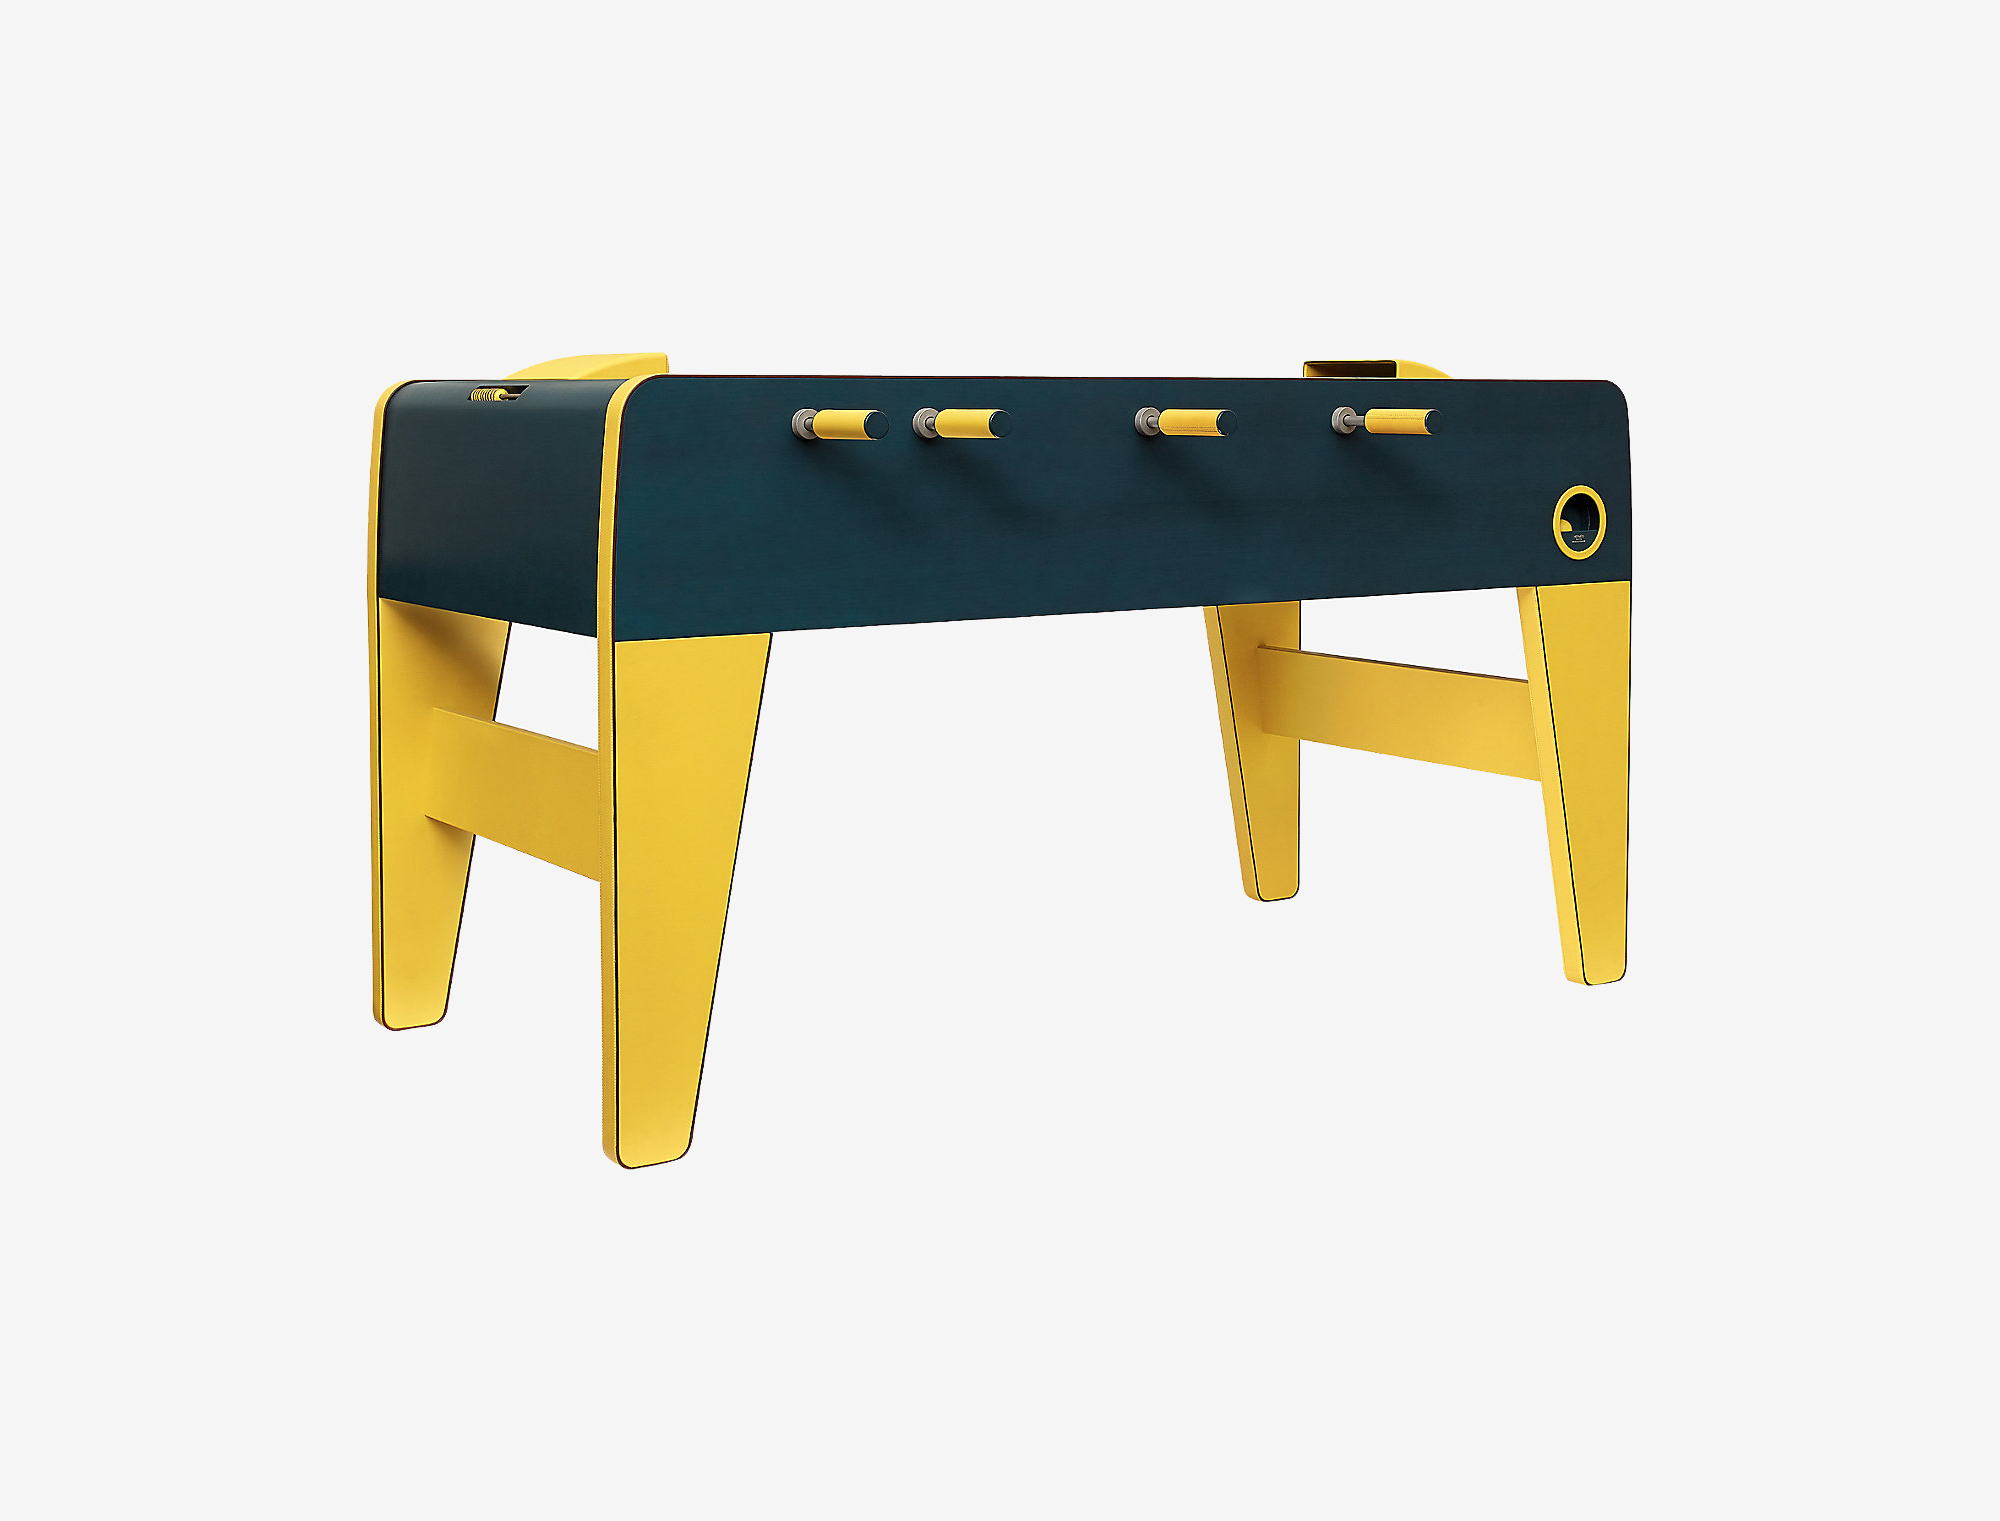 foosball-table--5030227 00-front-4-300-0-1521-1521